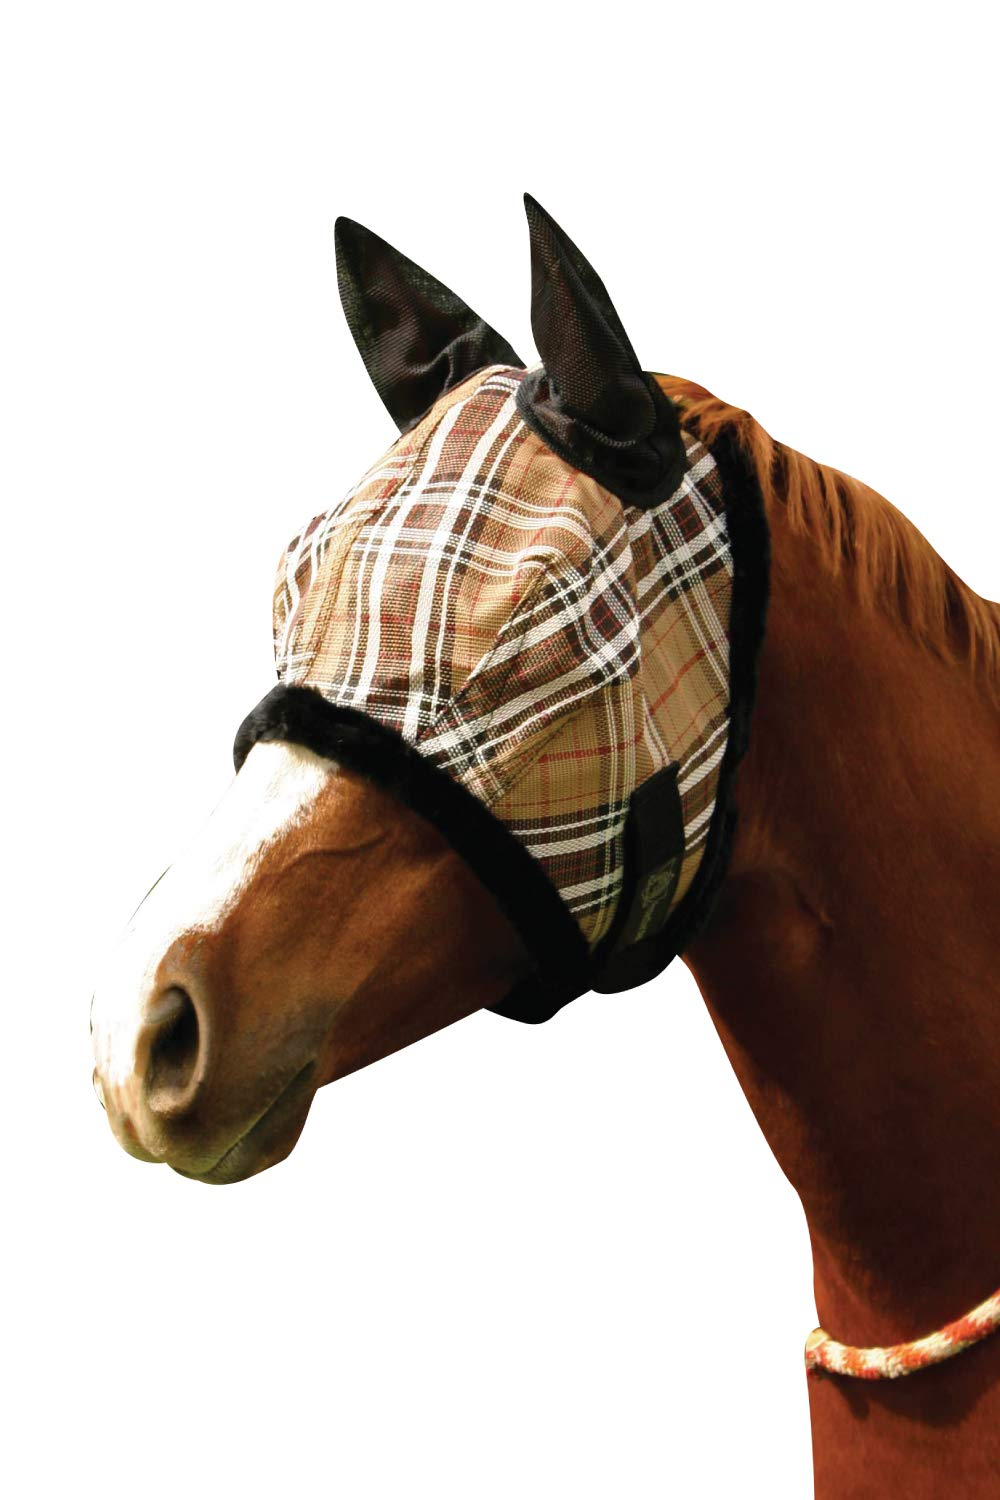 Kensington Signature Fly Mask with Removable Nose and Soft Mesh Ears — Protects Horses Face, Nose and Ears from Biting Insects and UV Rays While Allowing Full Visibility